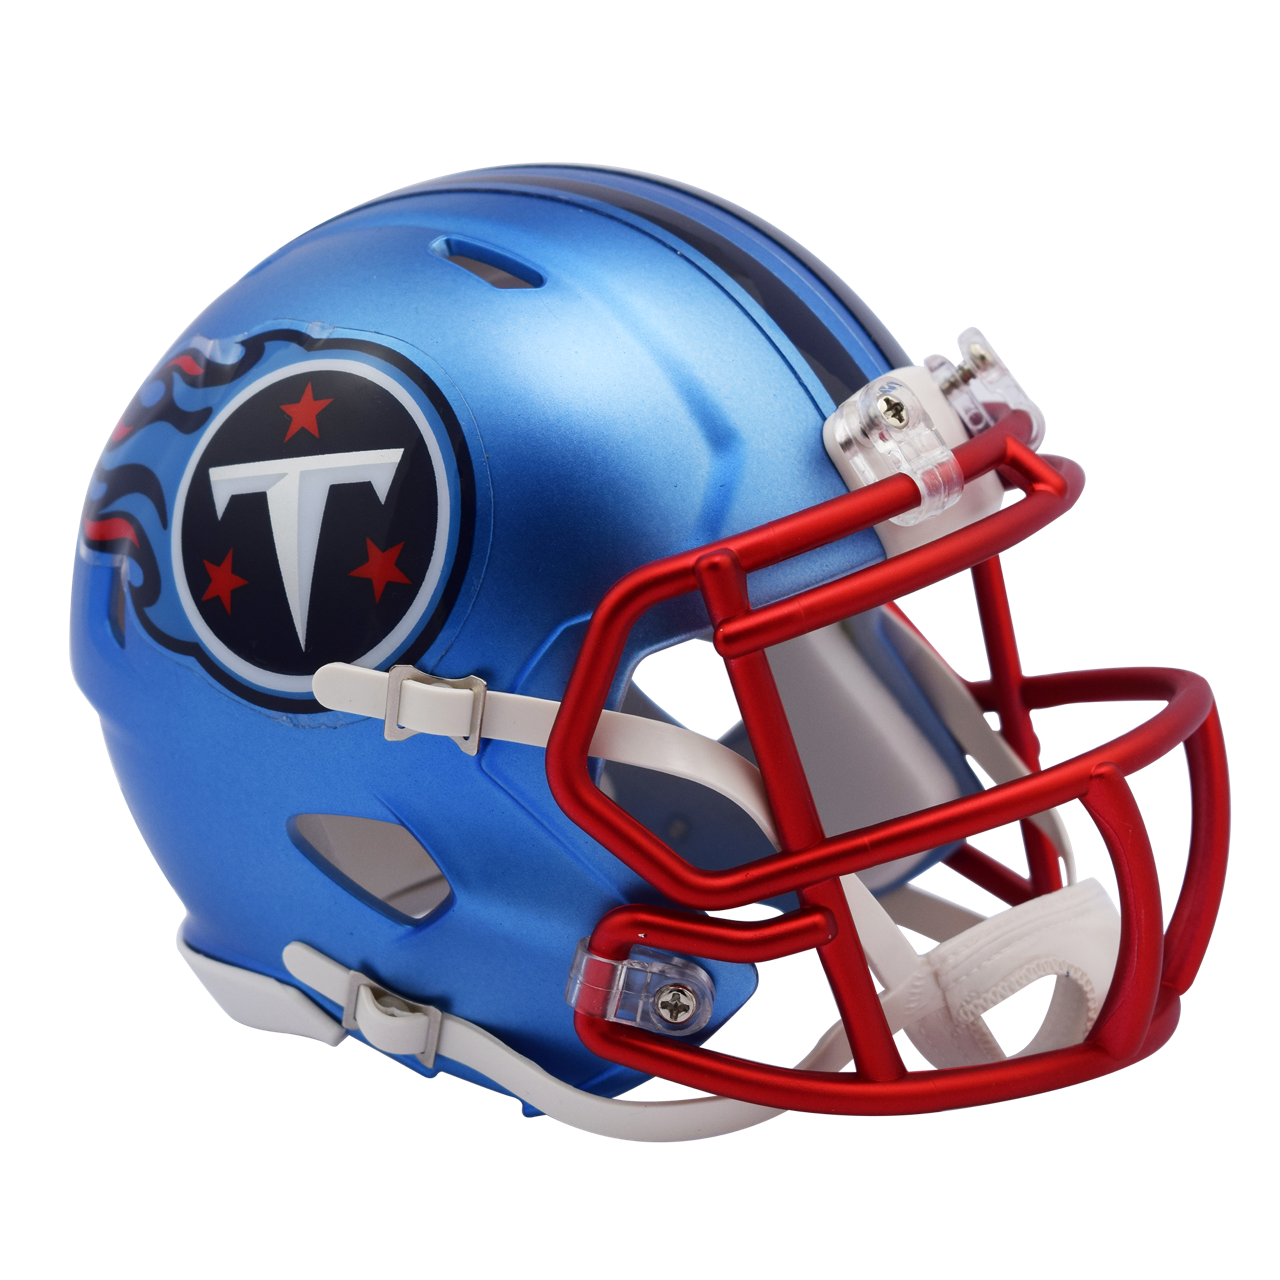 d9d9da555 ... Tennessee Titans NFL Blaze Revolution Speed Riddell Mini Football Helmet.  Image 1. Image 1